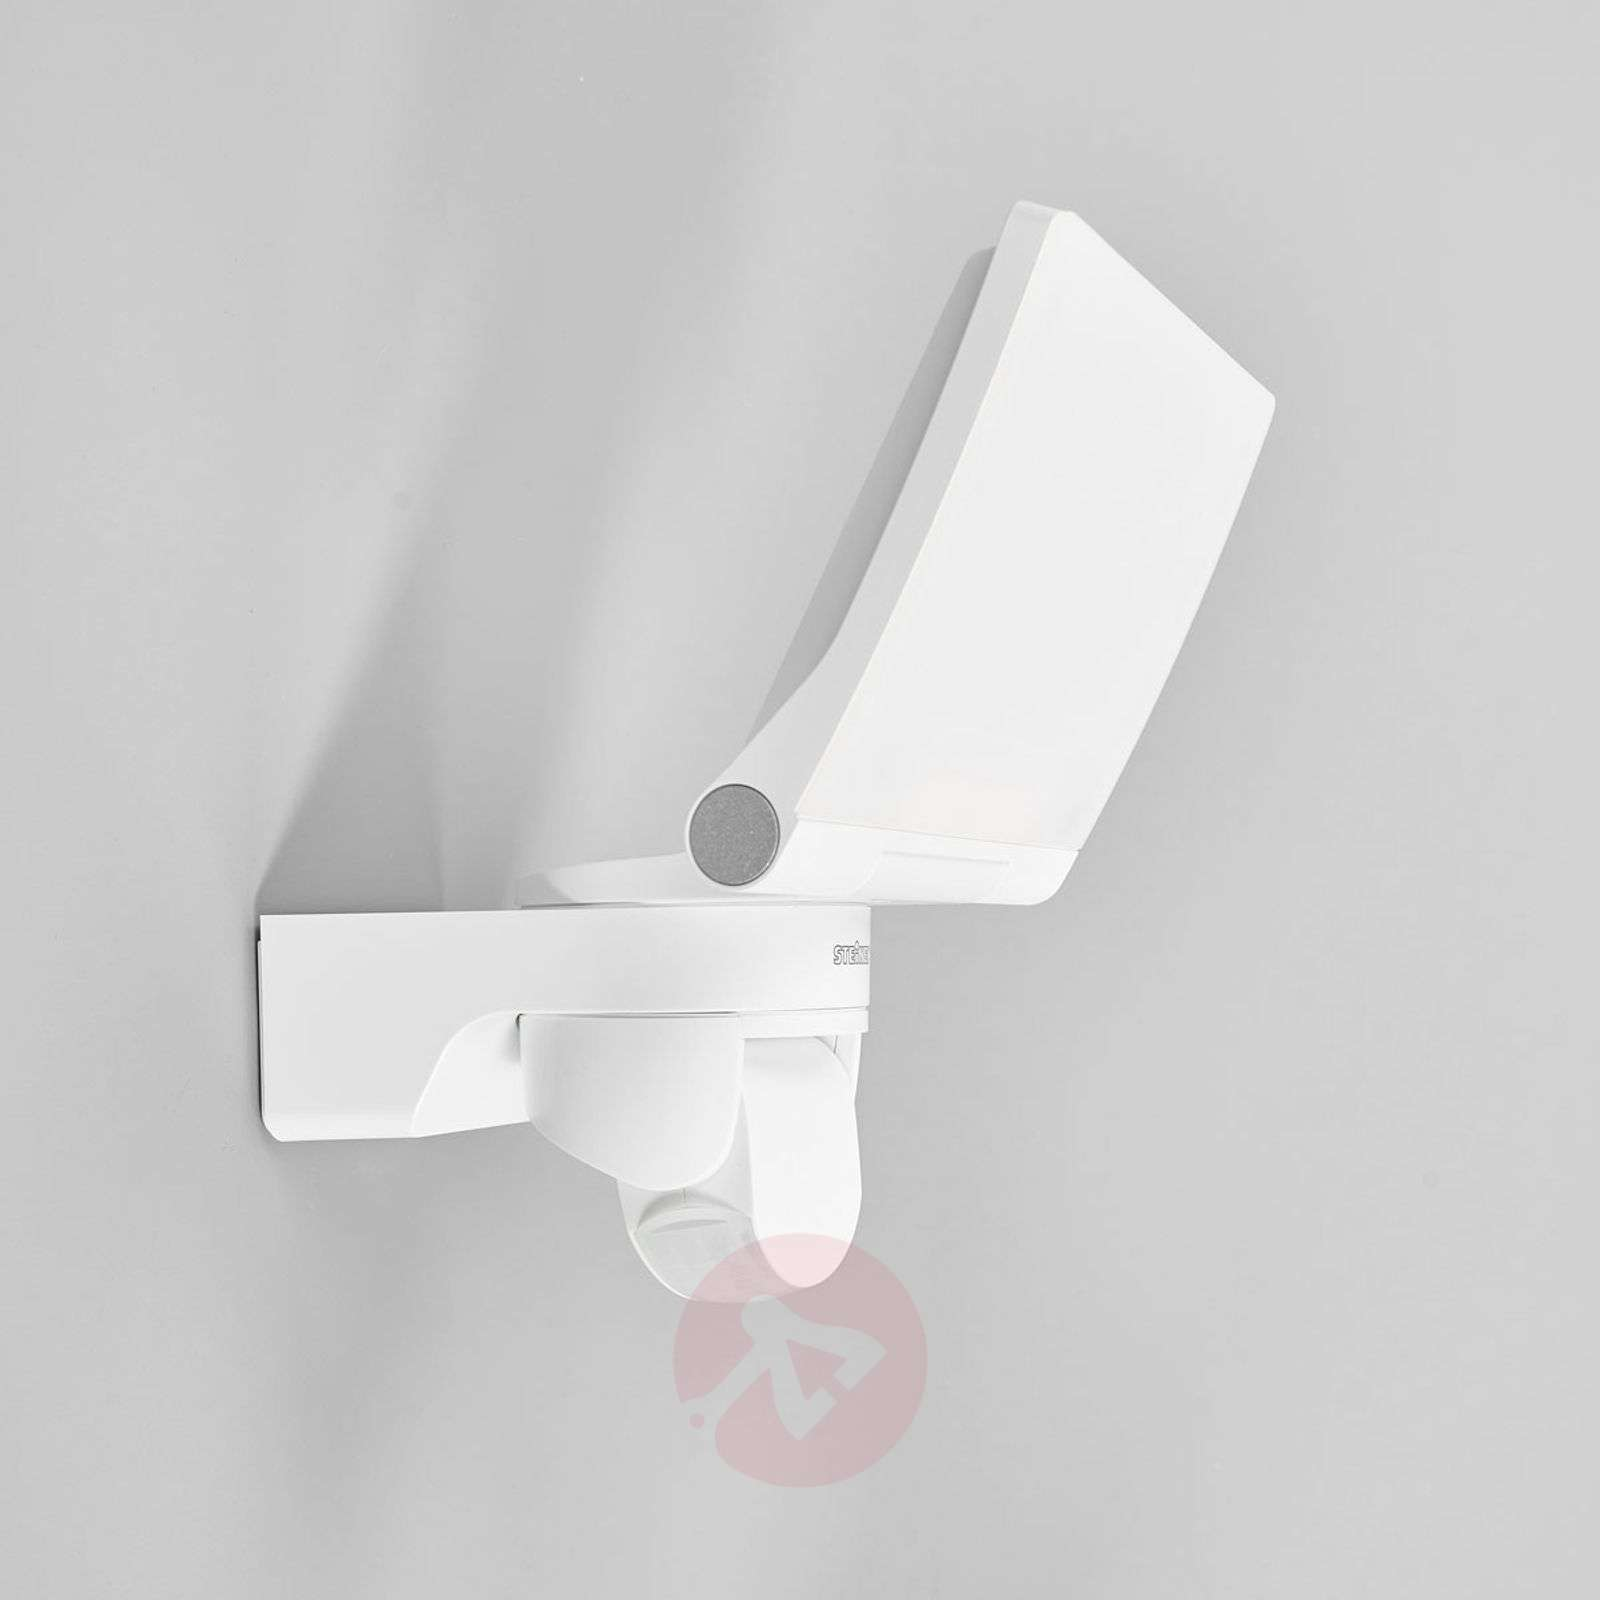 XLED Home 2 LED outdoor wall light in white-8505692-01